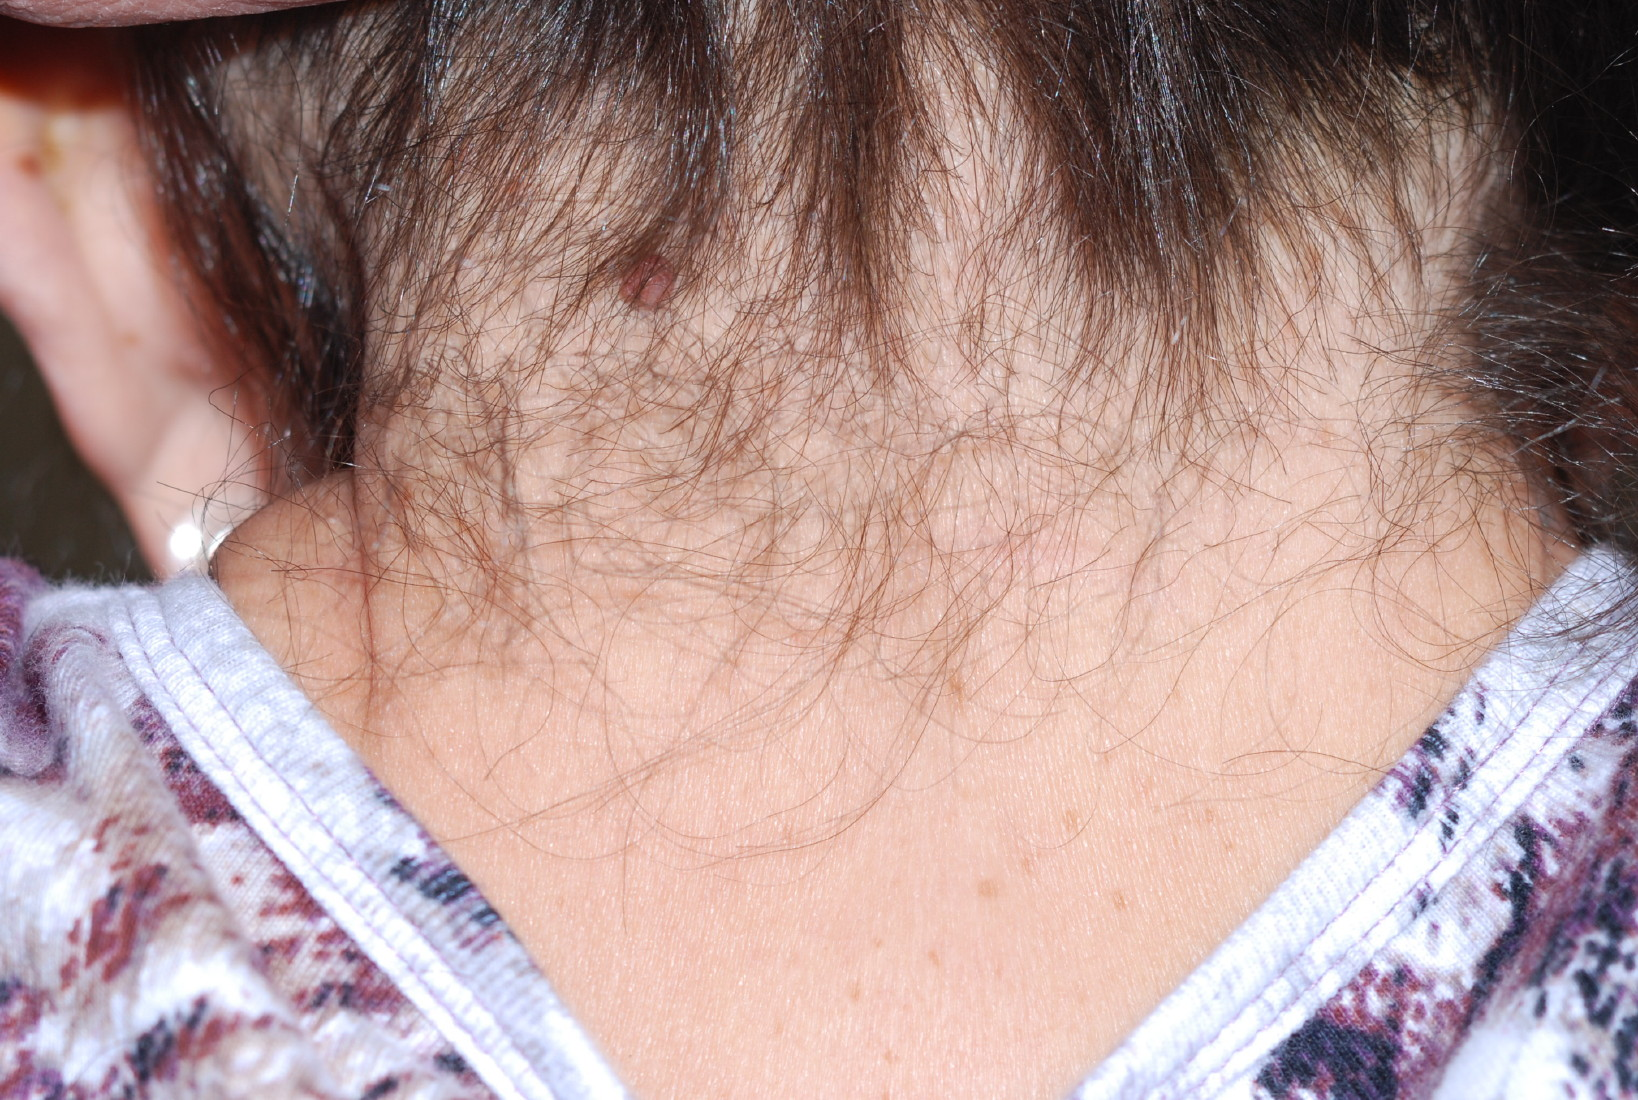 Posterior neck view of female with Noonan syndrome